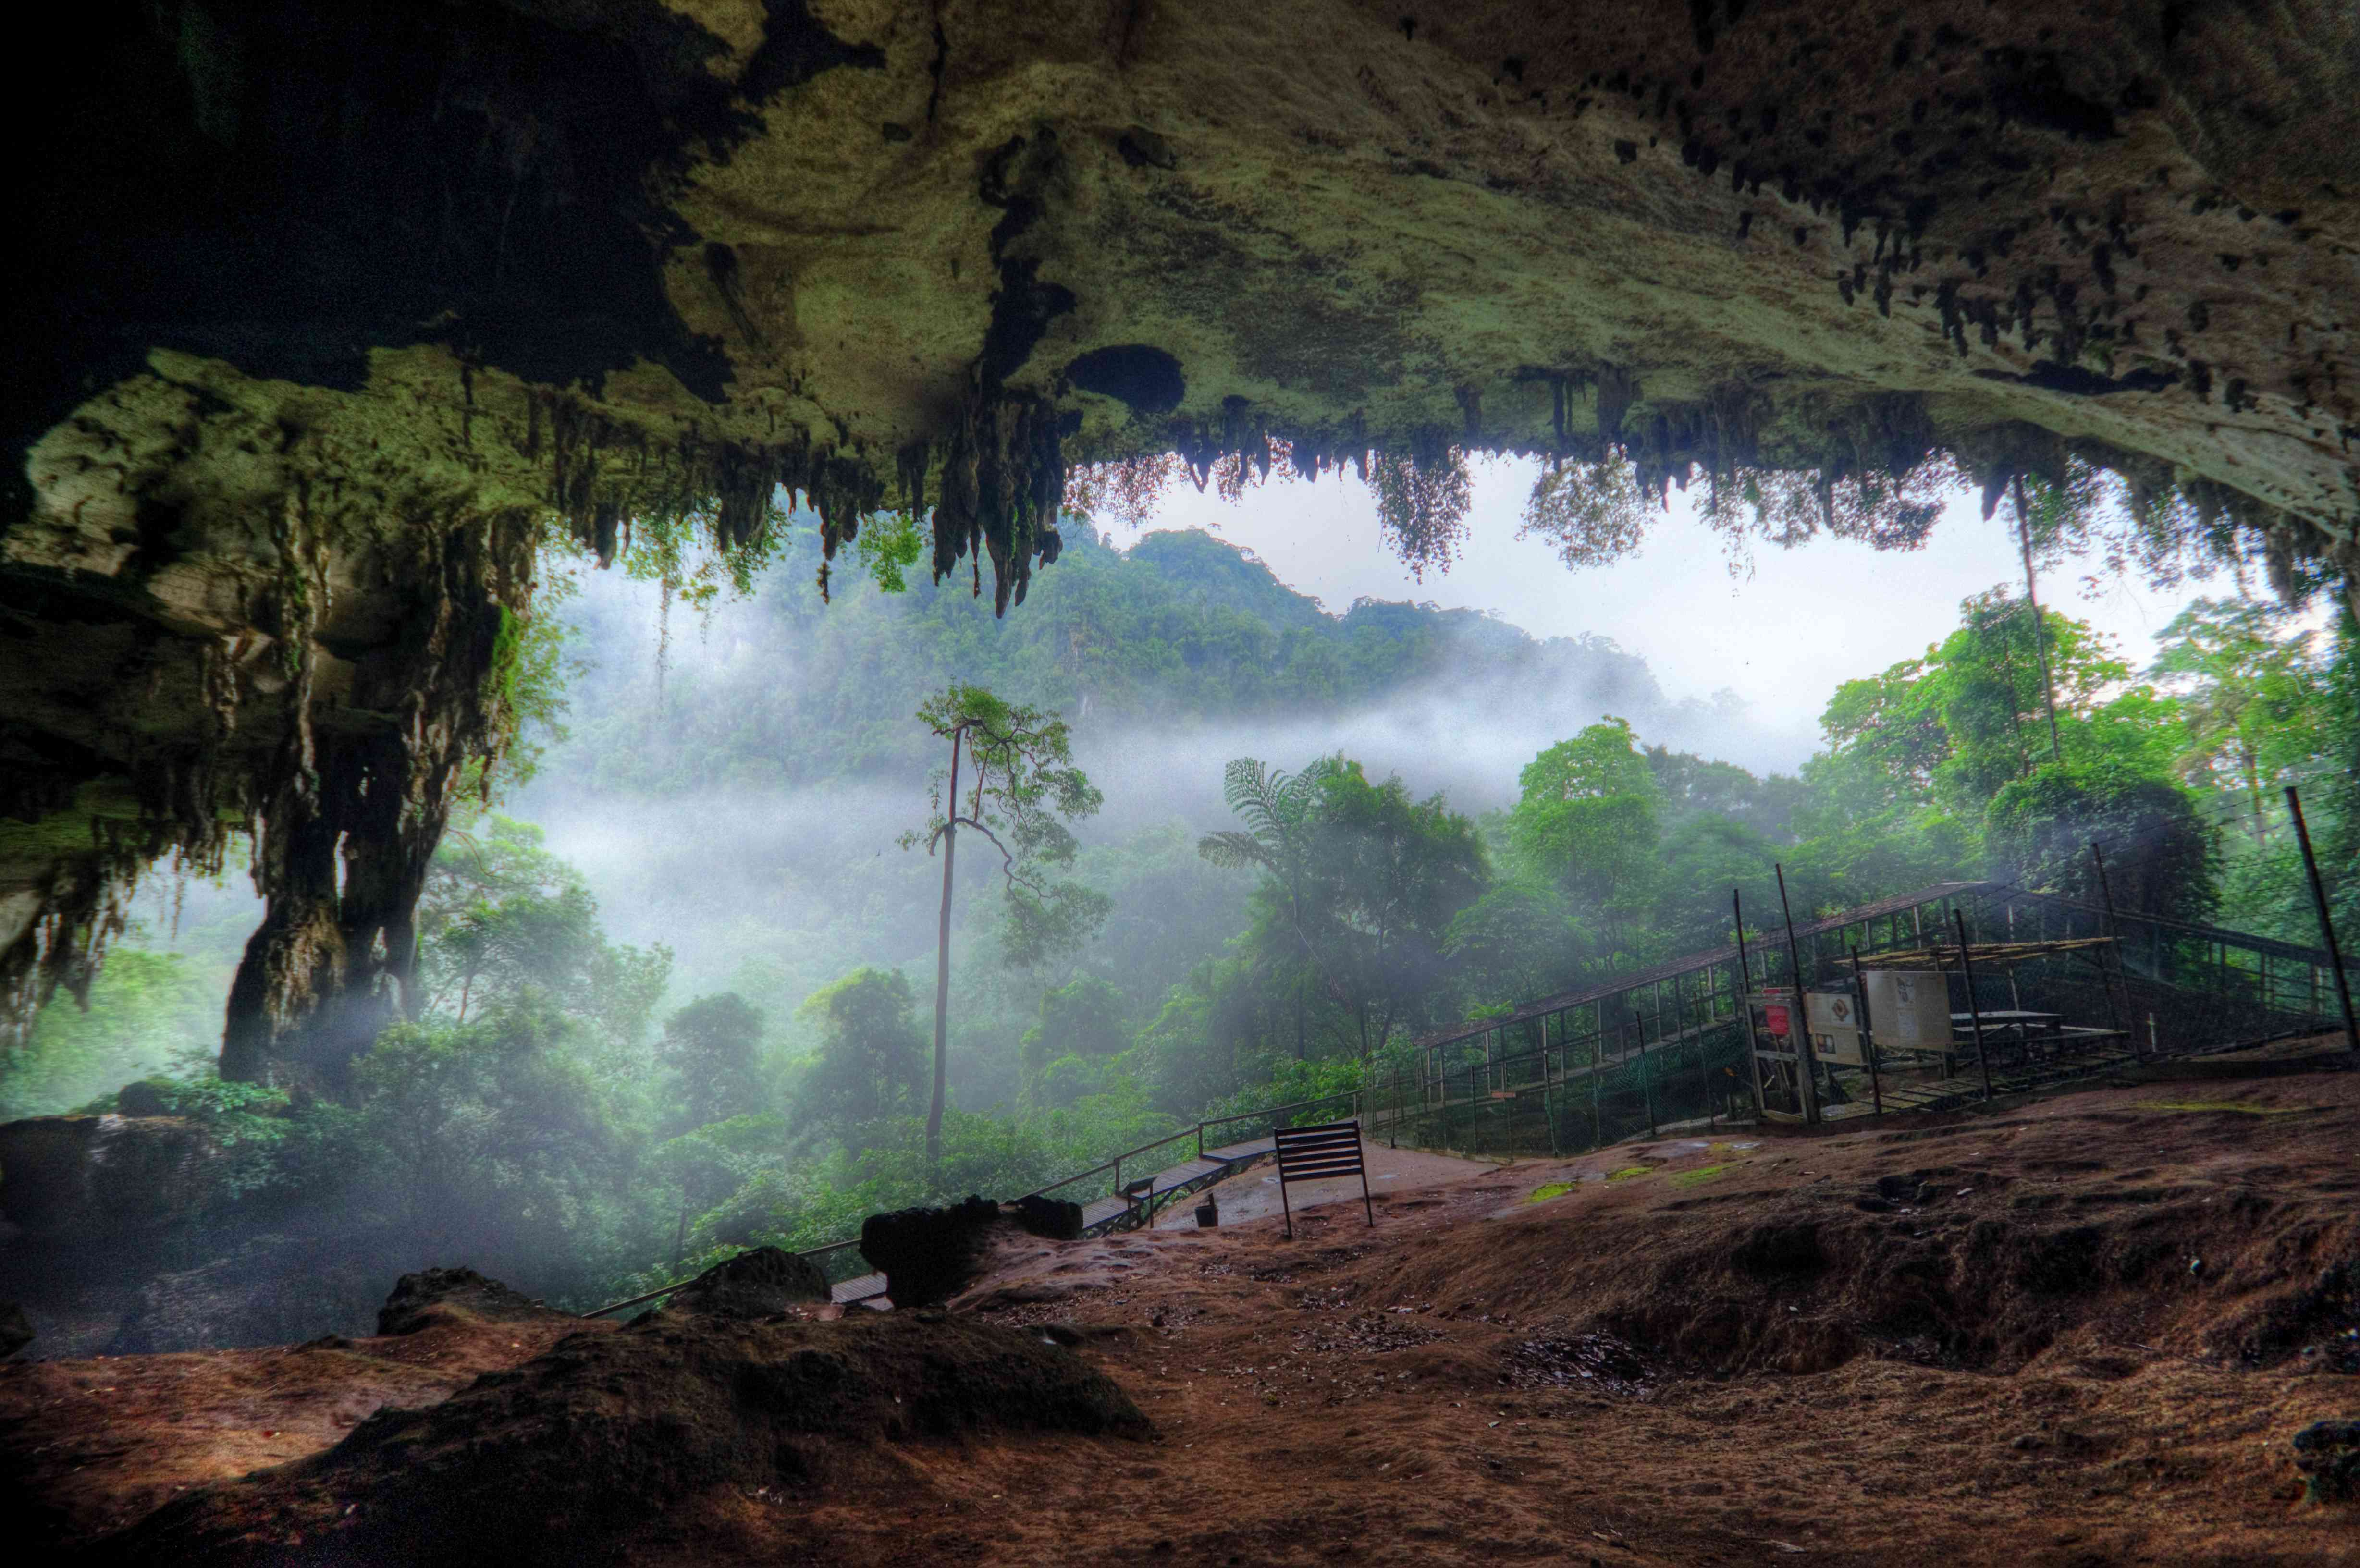 Large cave and rainforest at Niah National Park in Borneo